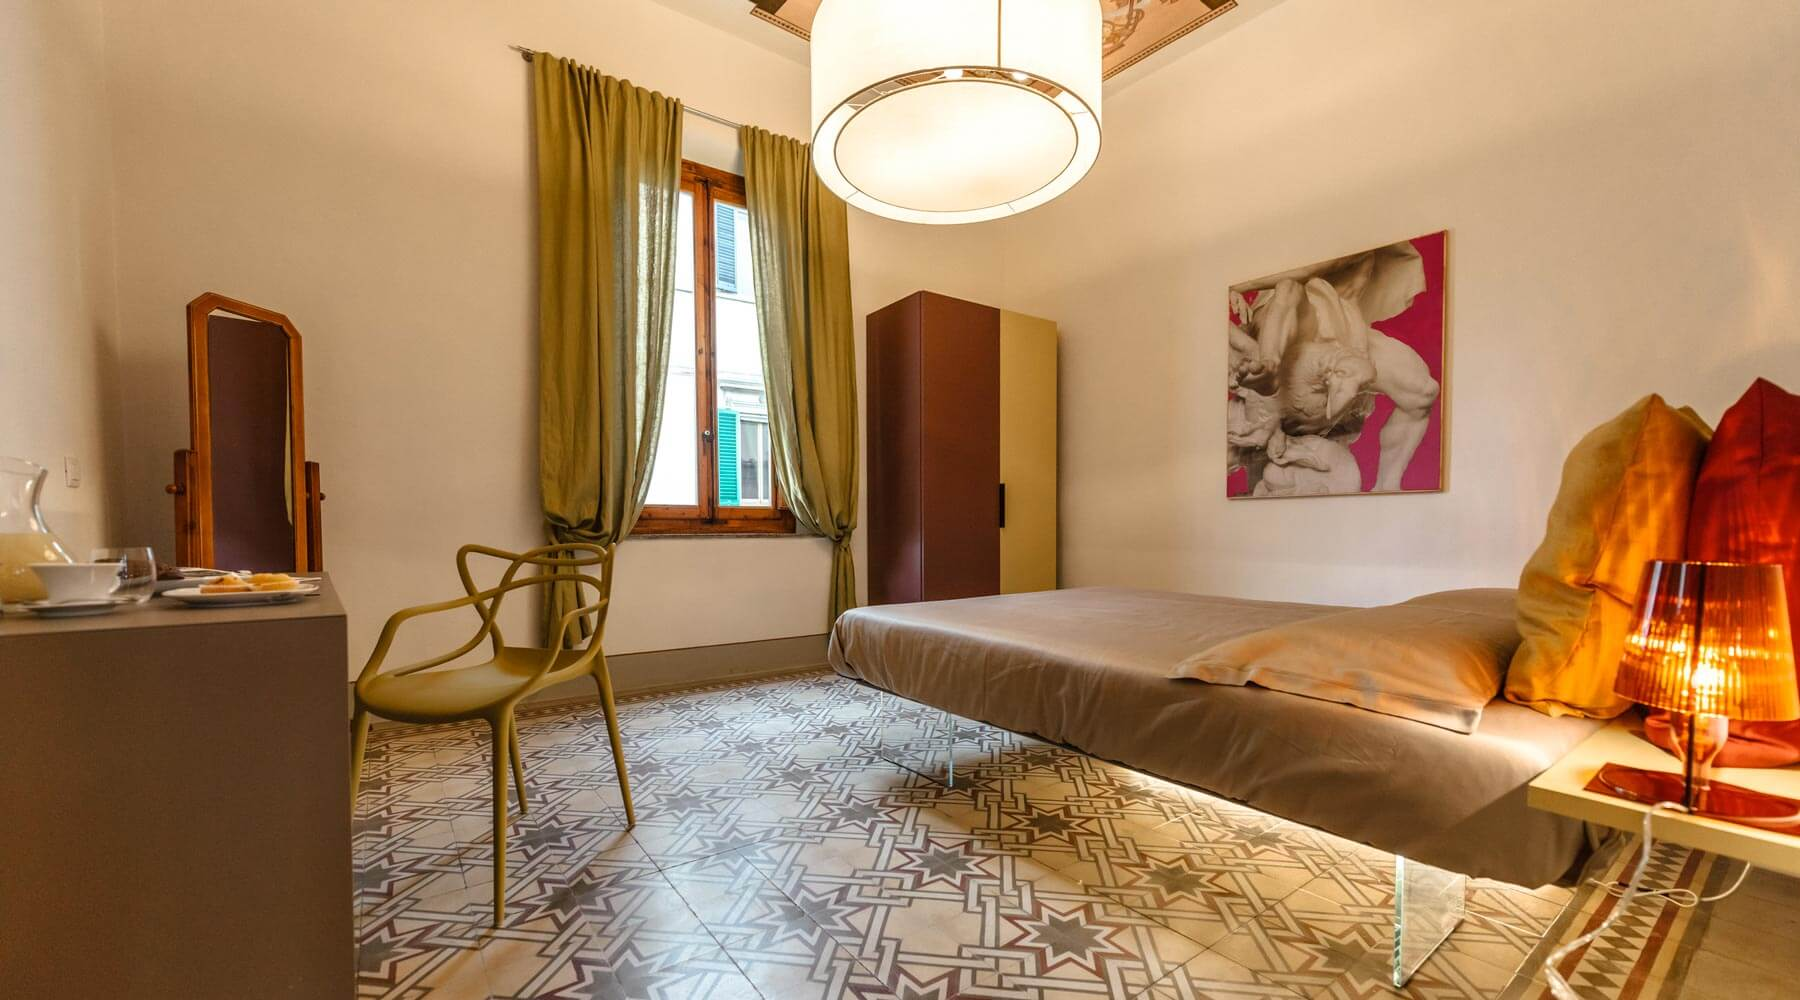 Bed and breakfast empoli bed and breakfast empoli with - Lago air letto ...